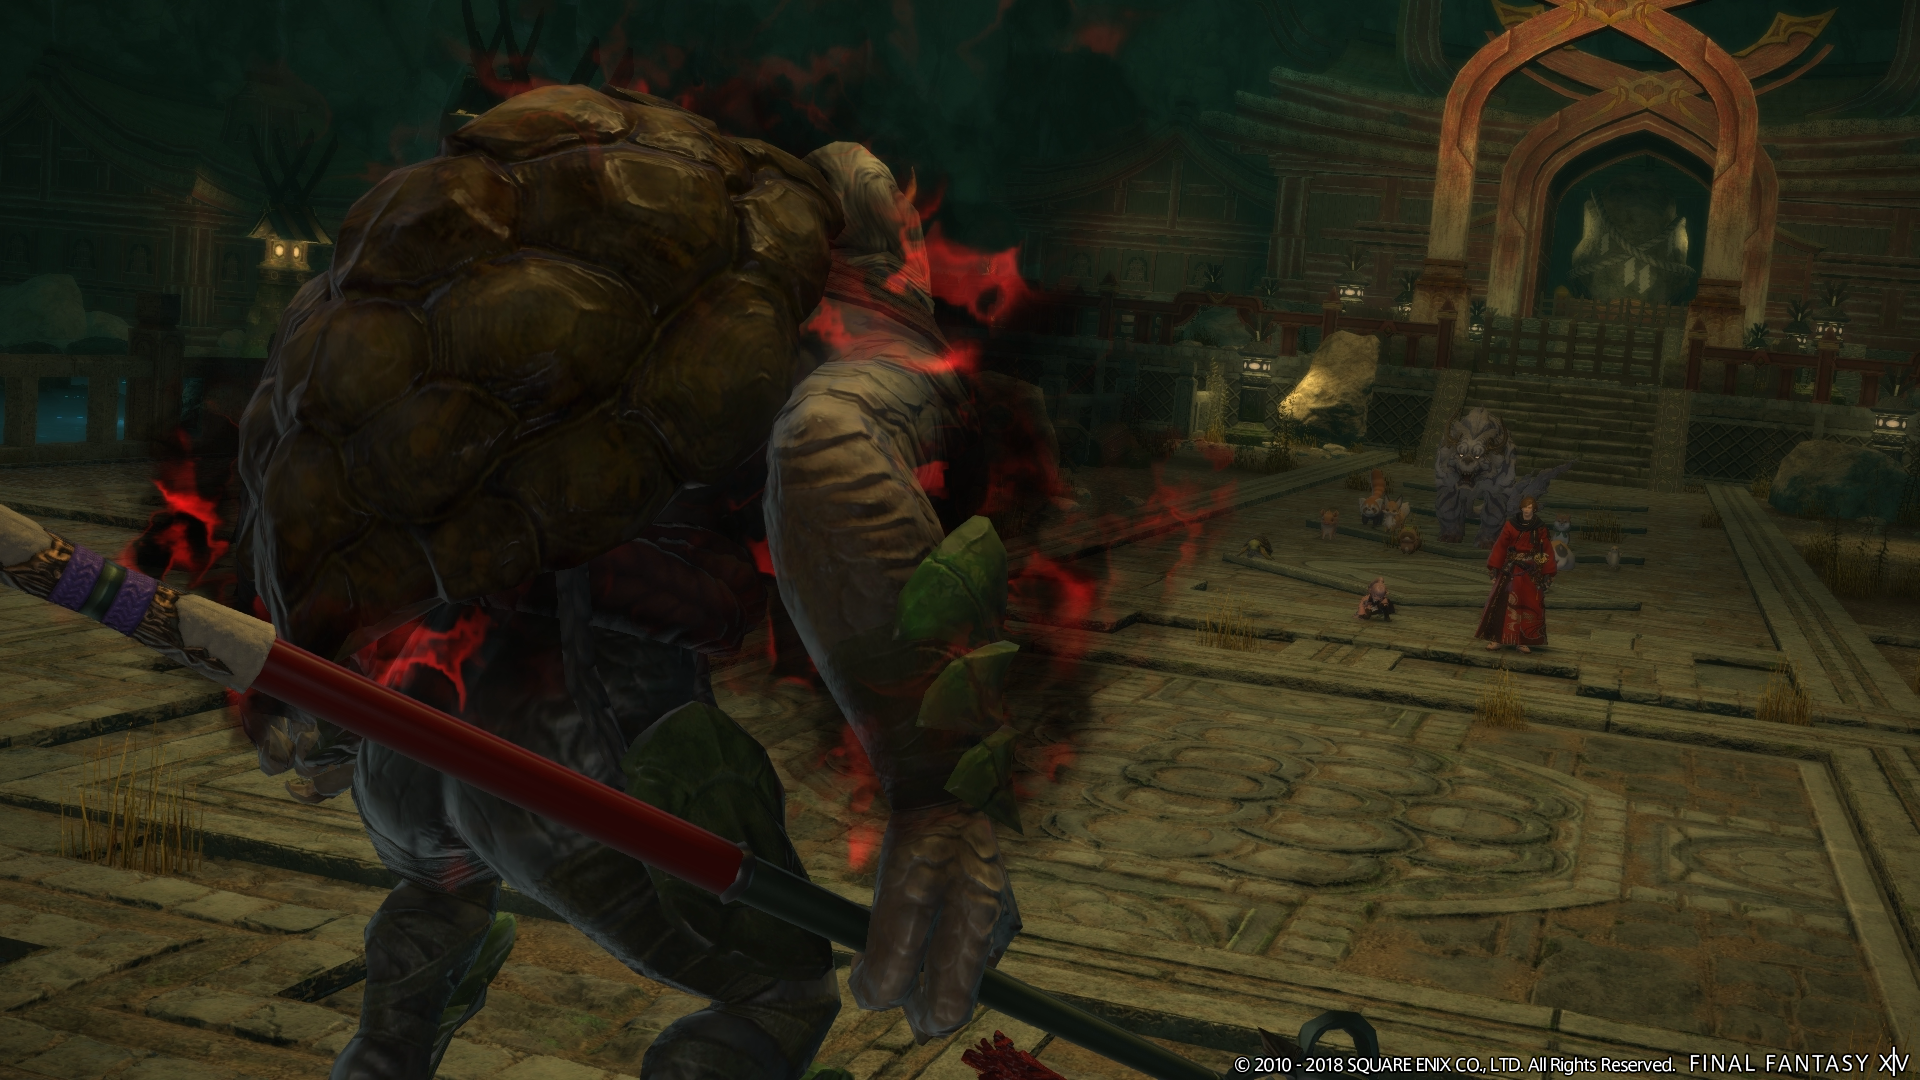 Final Fantasy XIV patch 4 3 adds lots of special deliveries